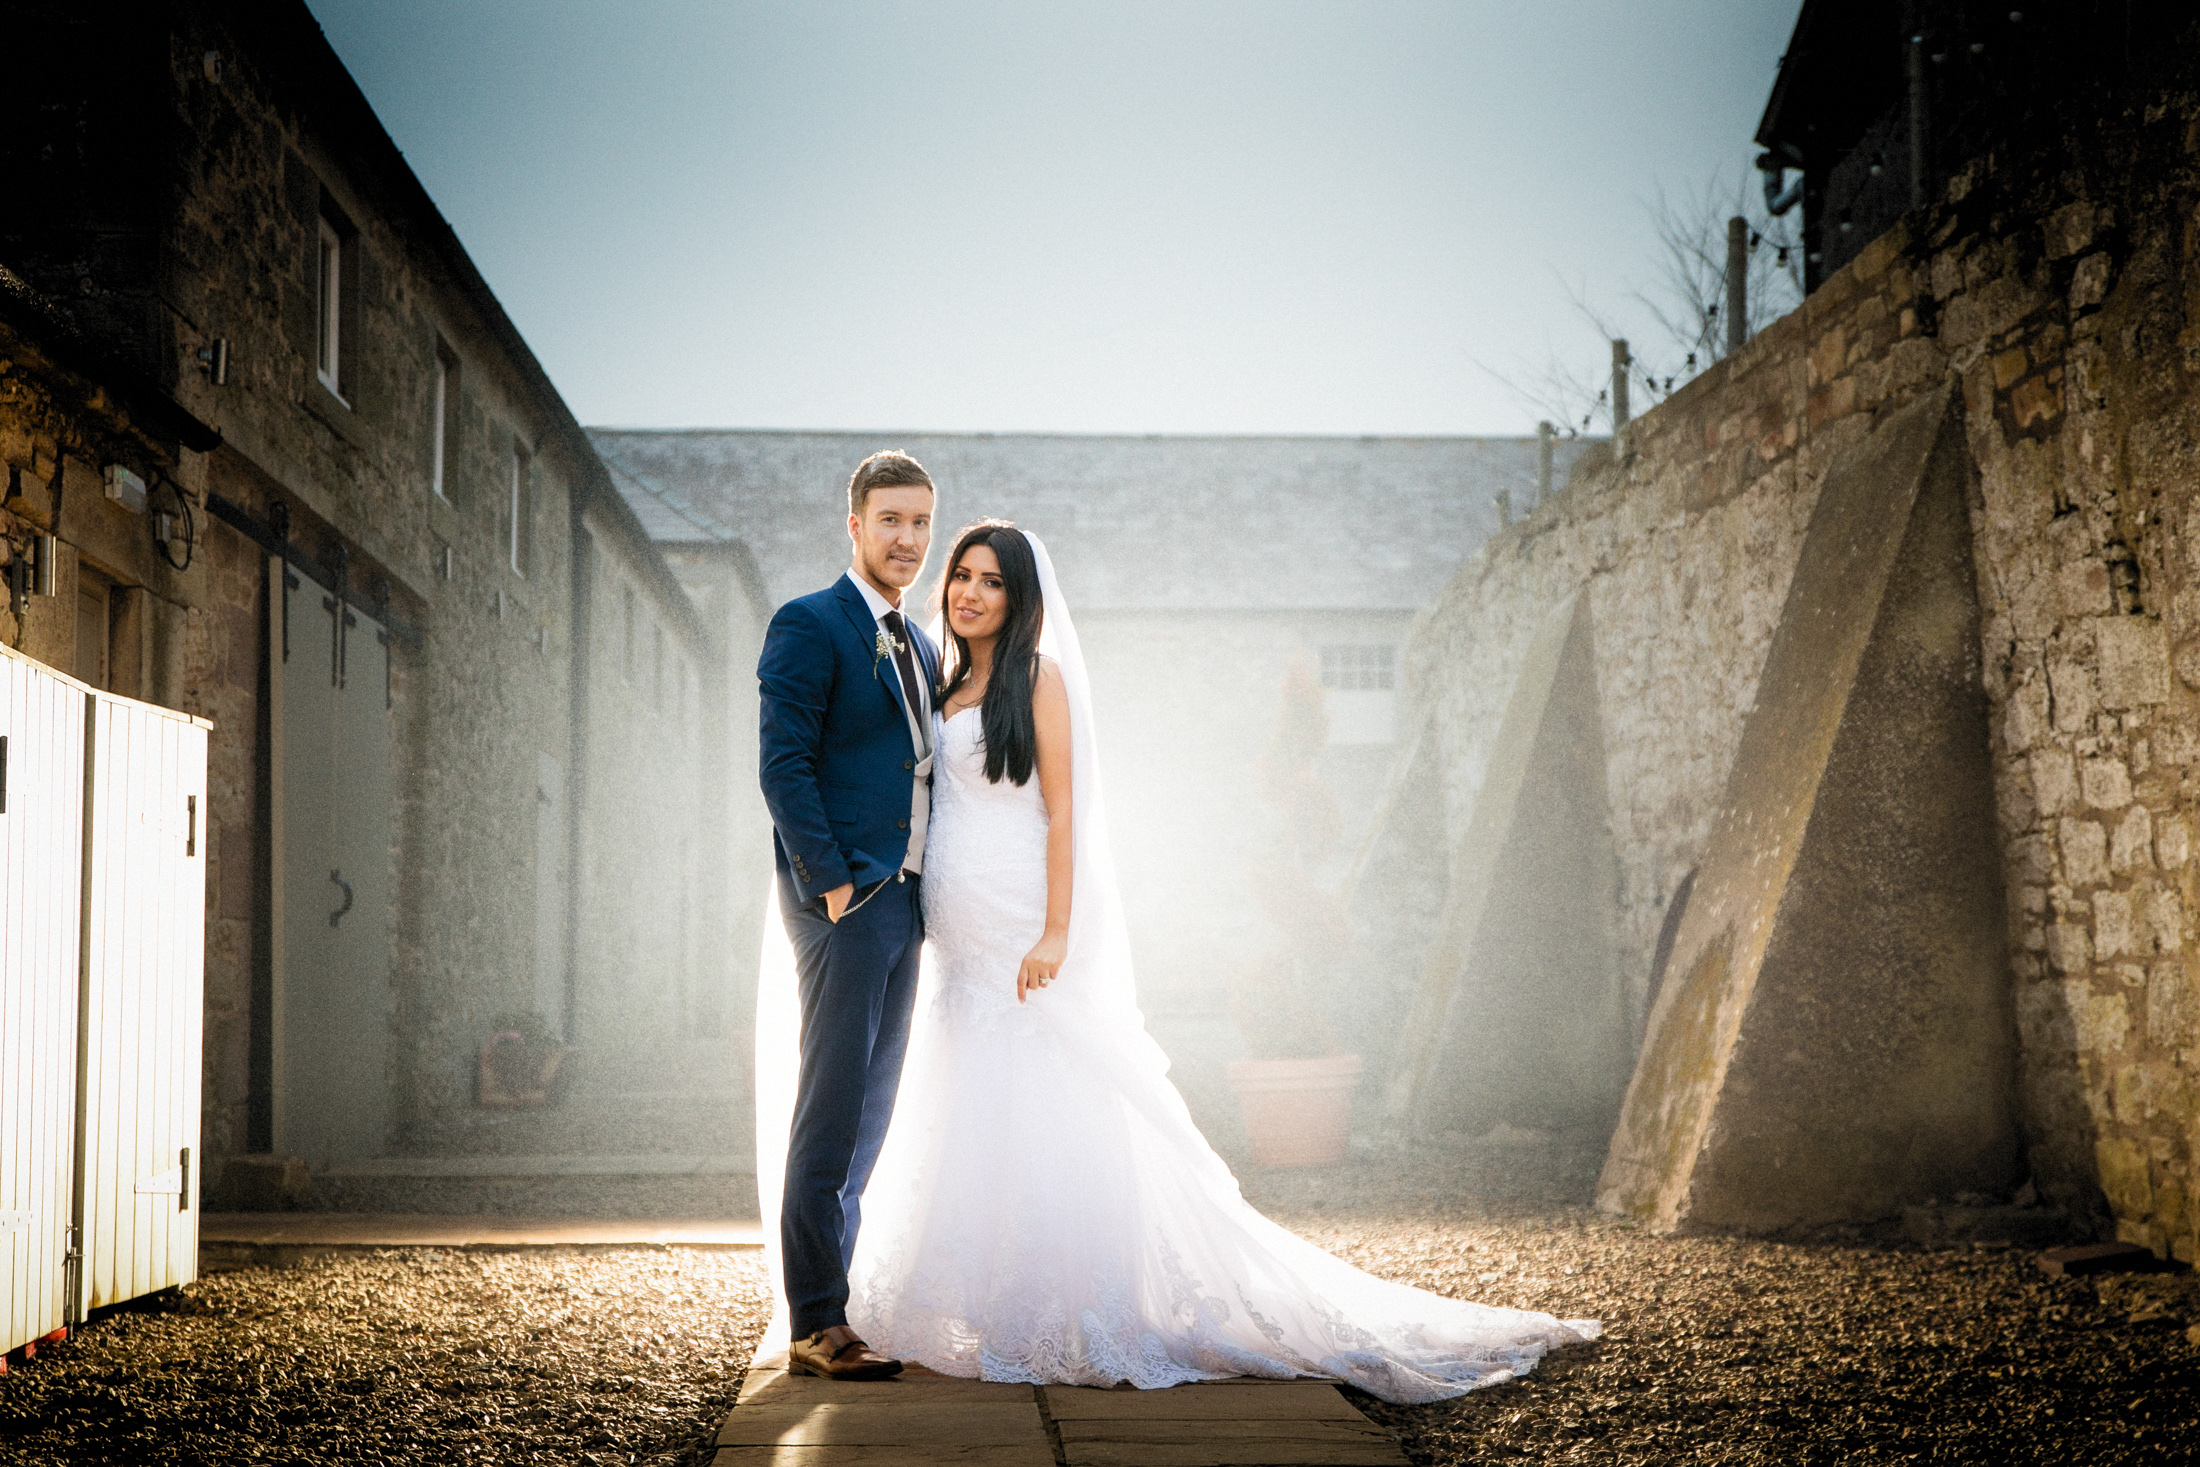 doxford barns wedding photos-101.jpg